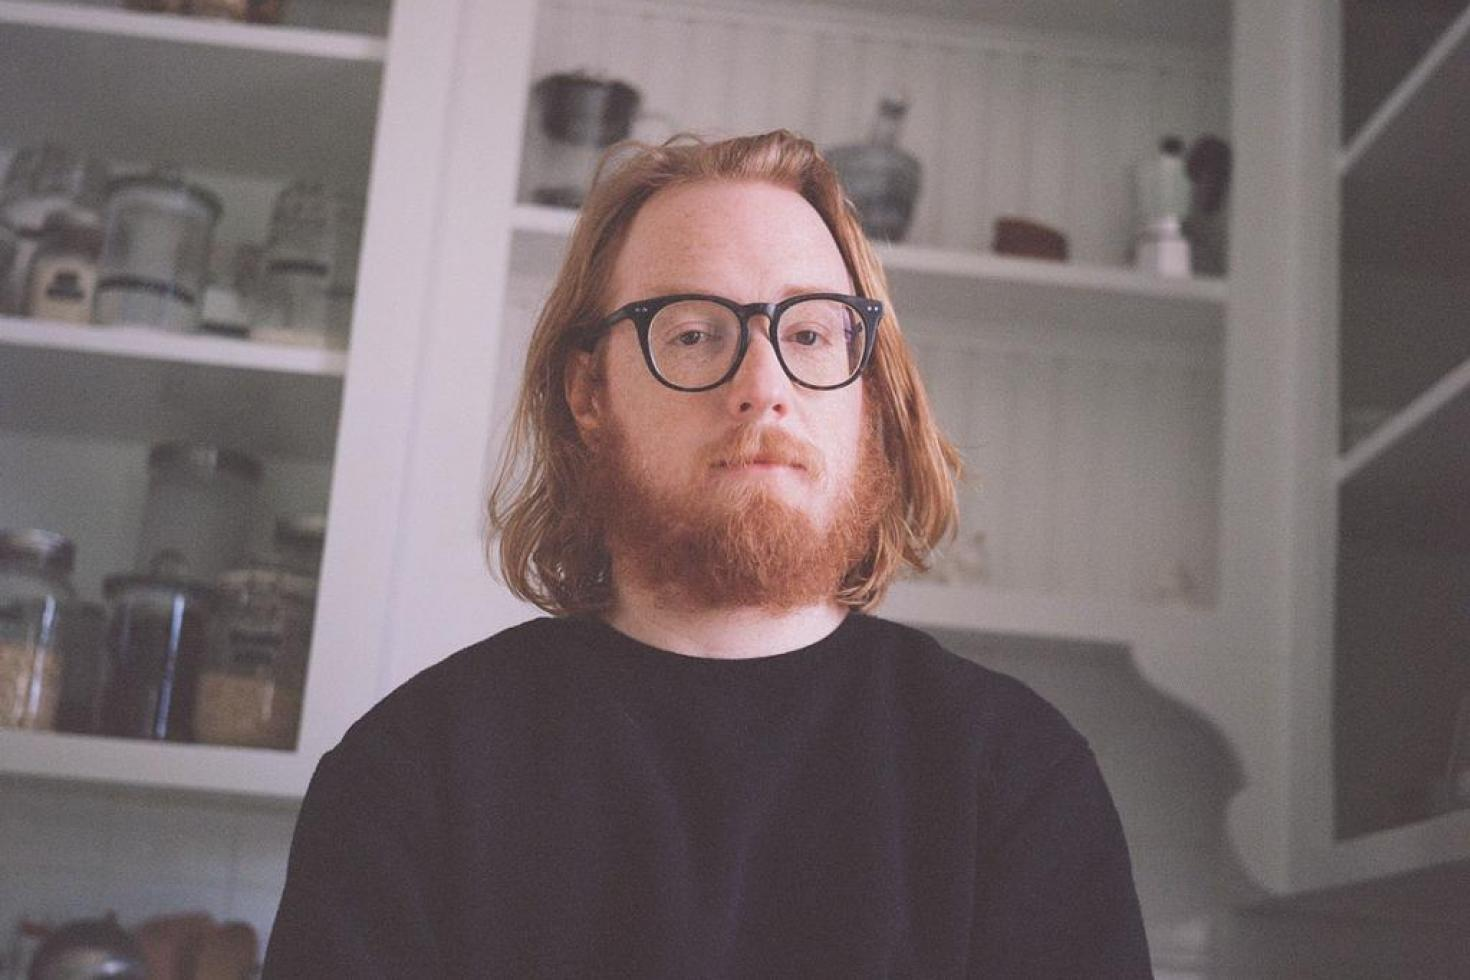 Ryan McKinley (Pkew Pkew Pkew) about his new solo project Moral Pleasures